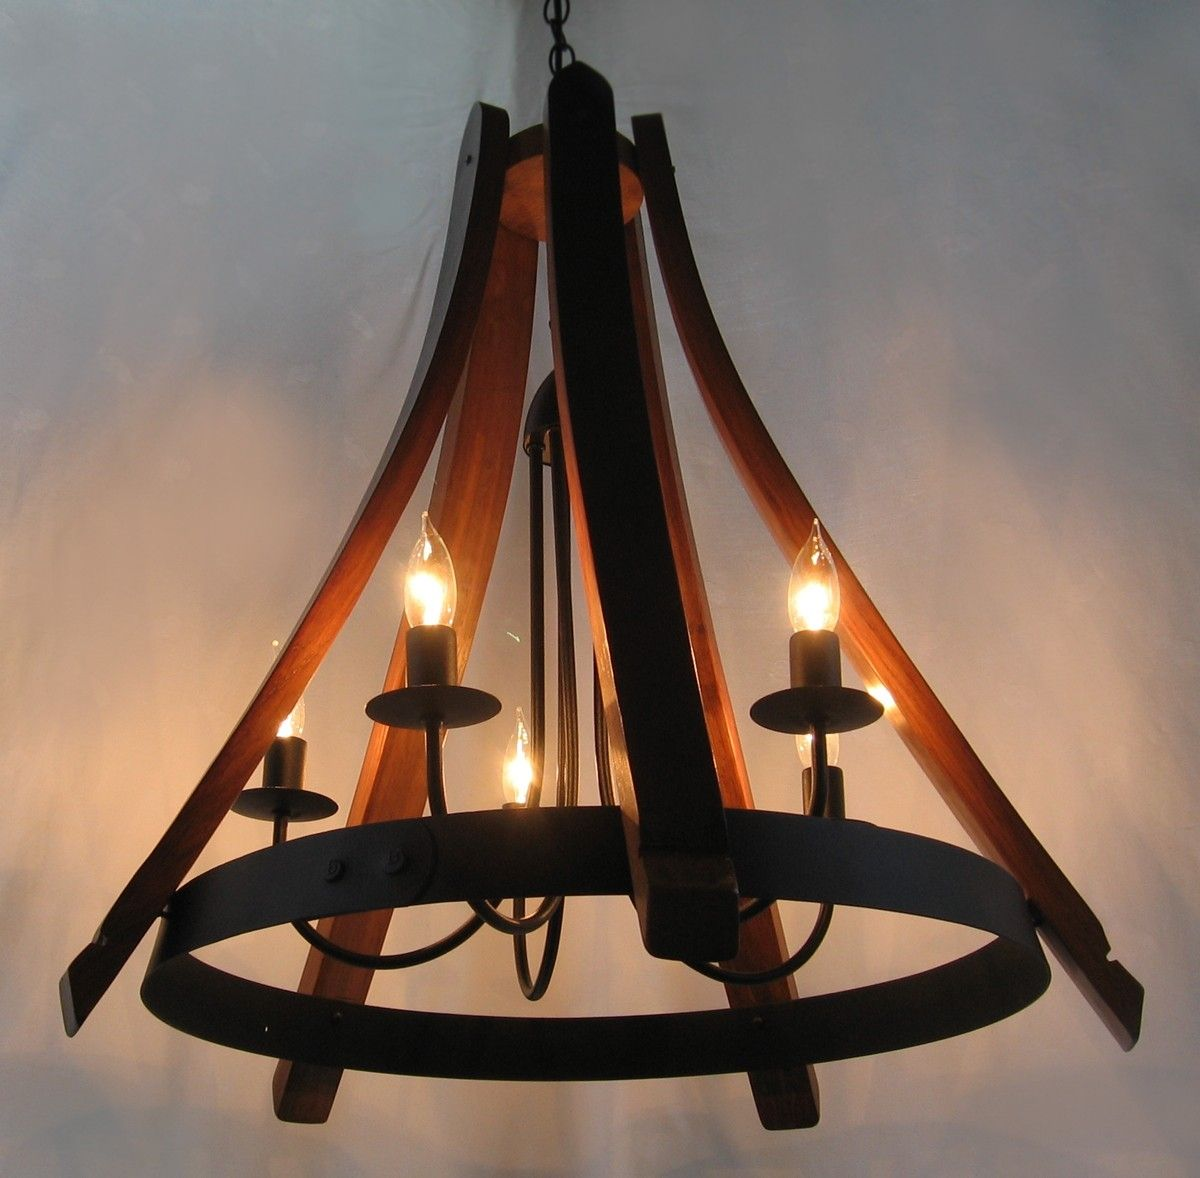 Buy a hand made cervantes wine barrel chandelier recycled oak staves and hoop pendant ceiling - Ceiling lights and chandeliers ...